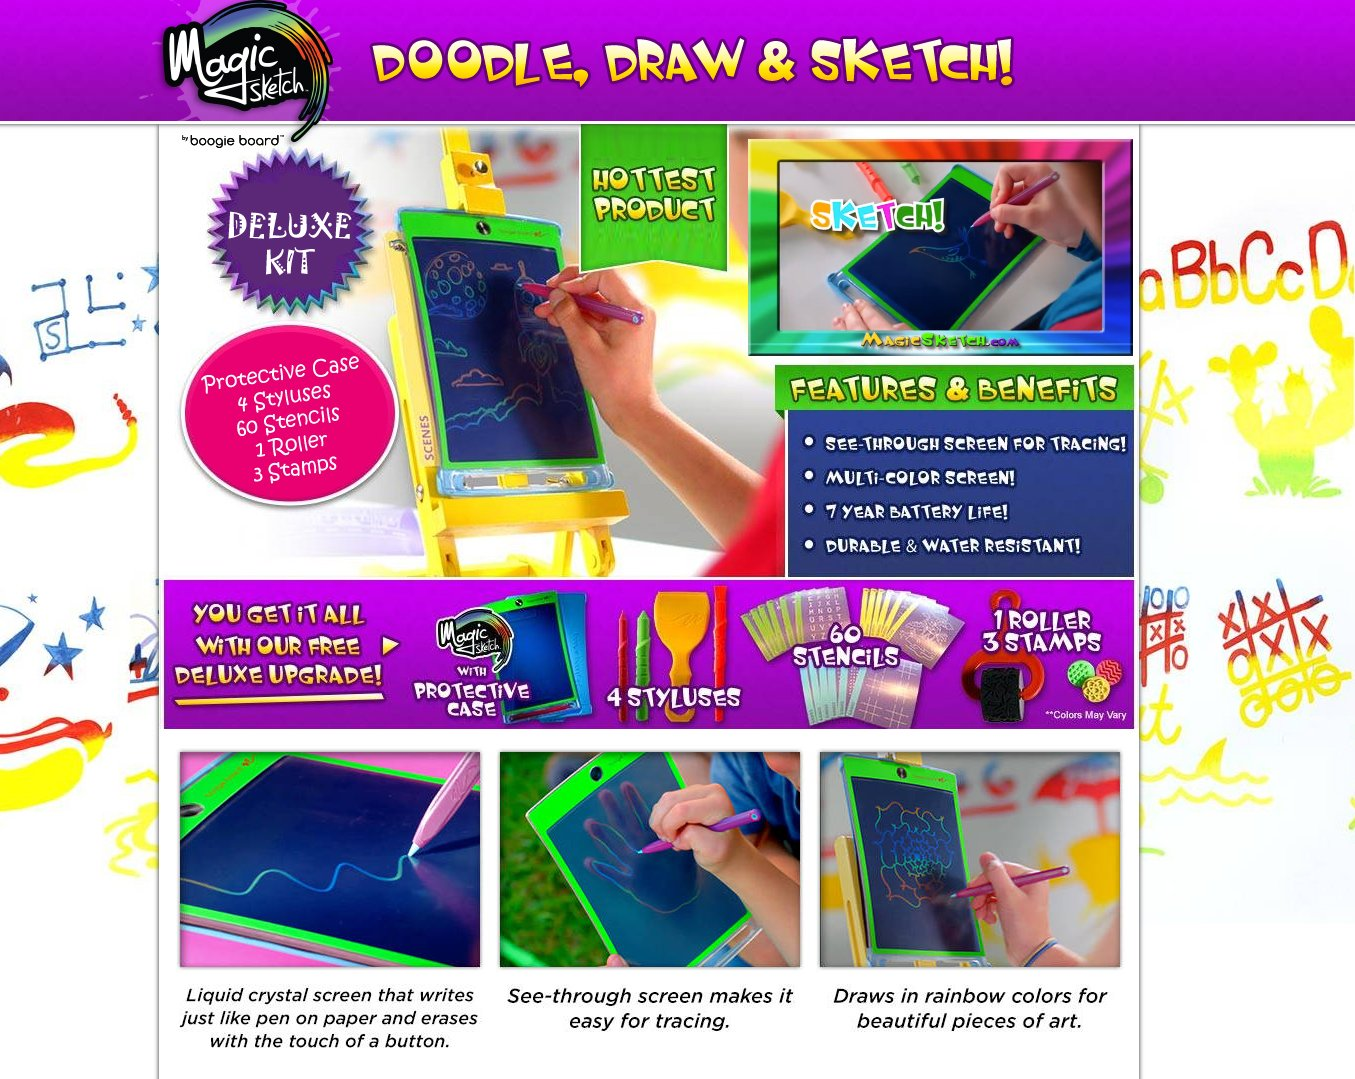 Office House Learning Tablet LCD Writing Board Car Rides 60 Stencils Doodle Magic Sketch Deluxe KIT 1 Stamp Roller /& 3 Stamps Drawing School Includes Protective Cover Kids 4 Styluses